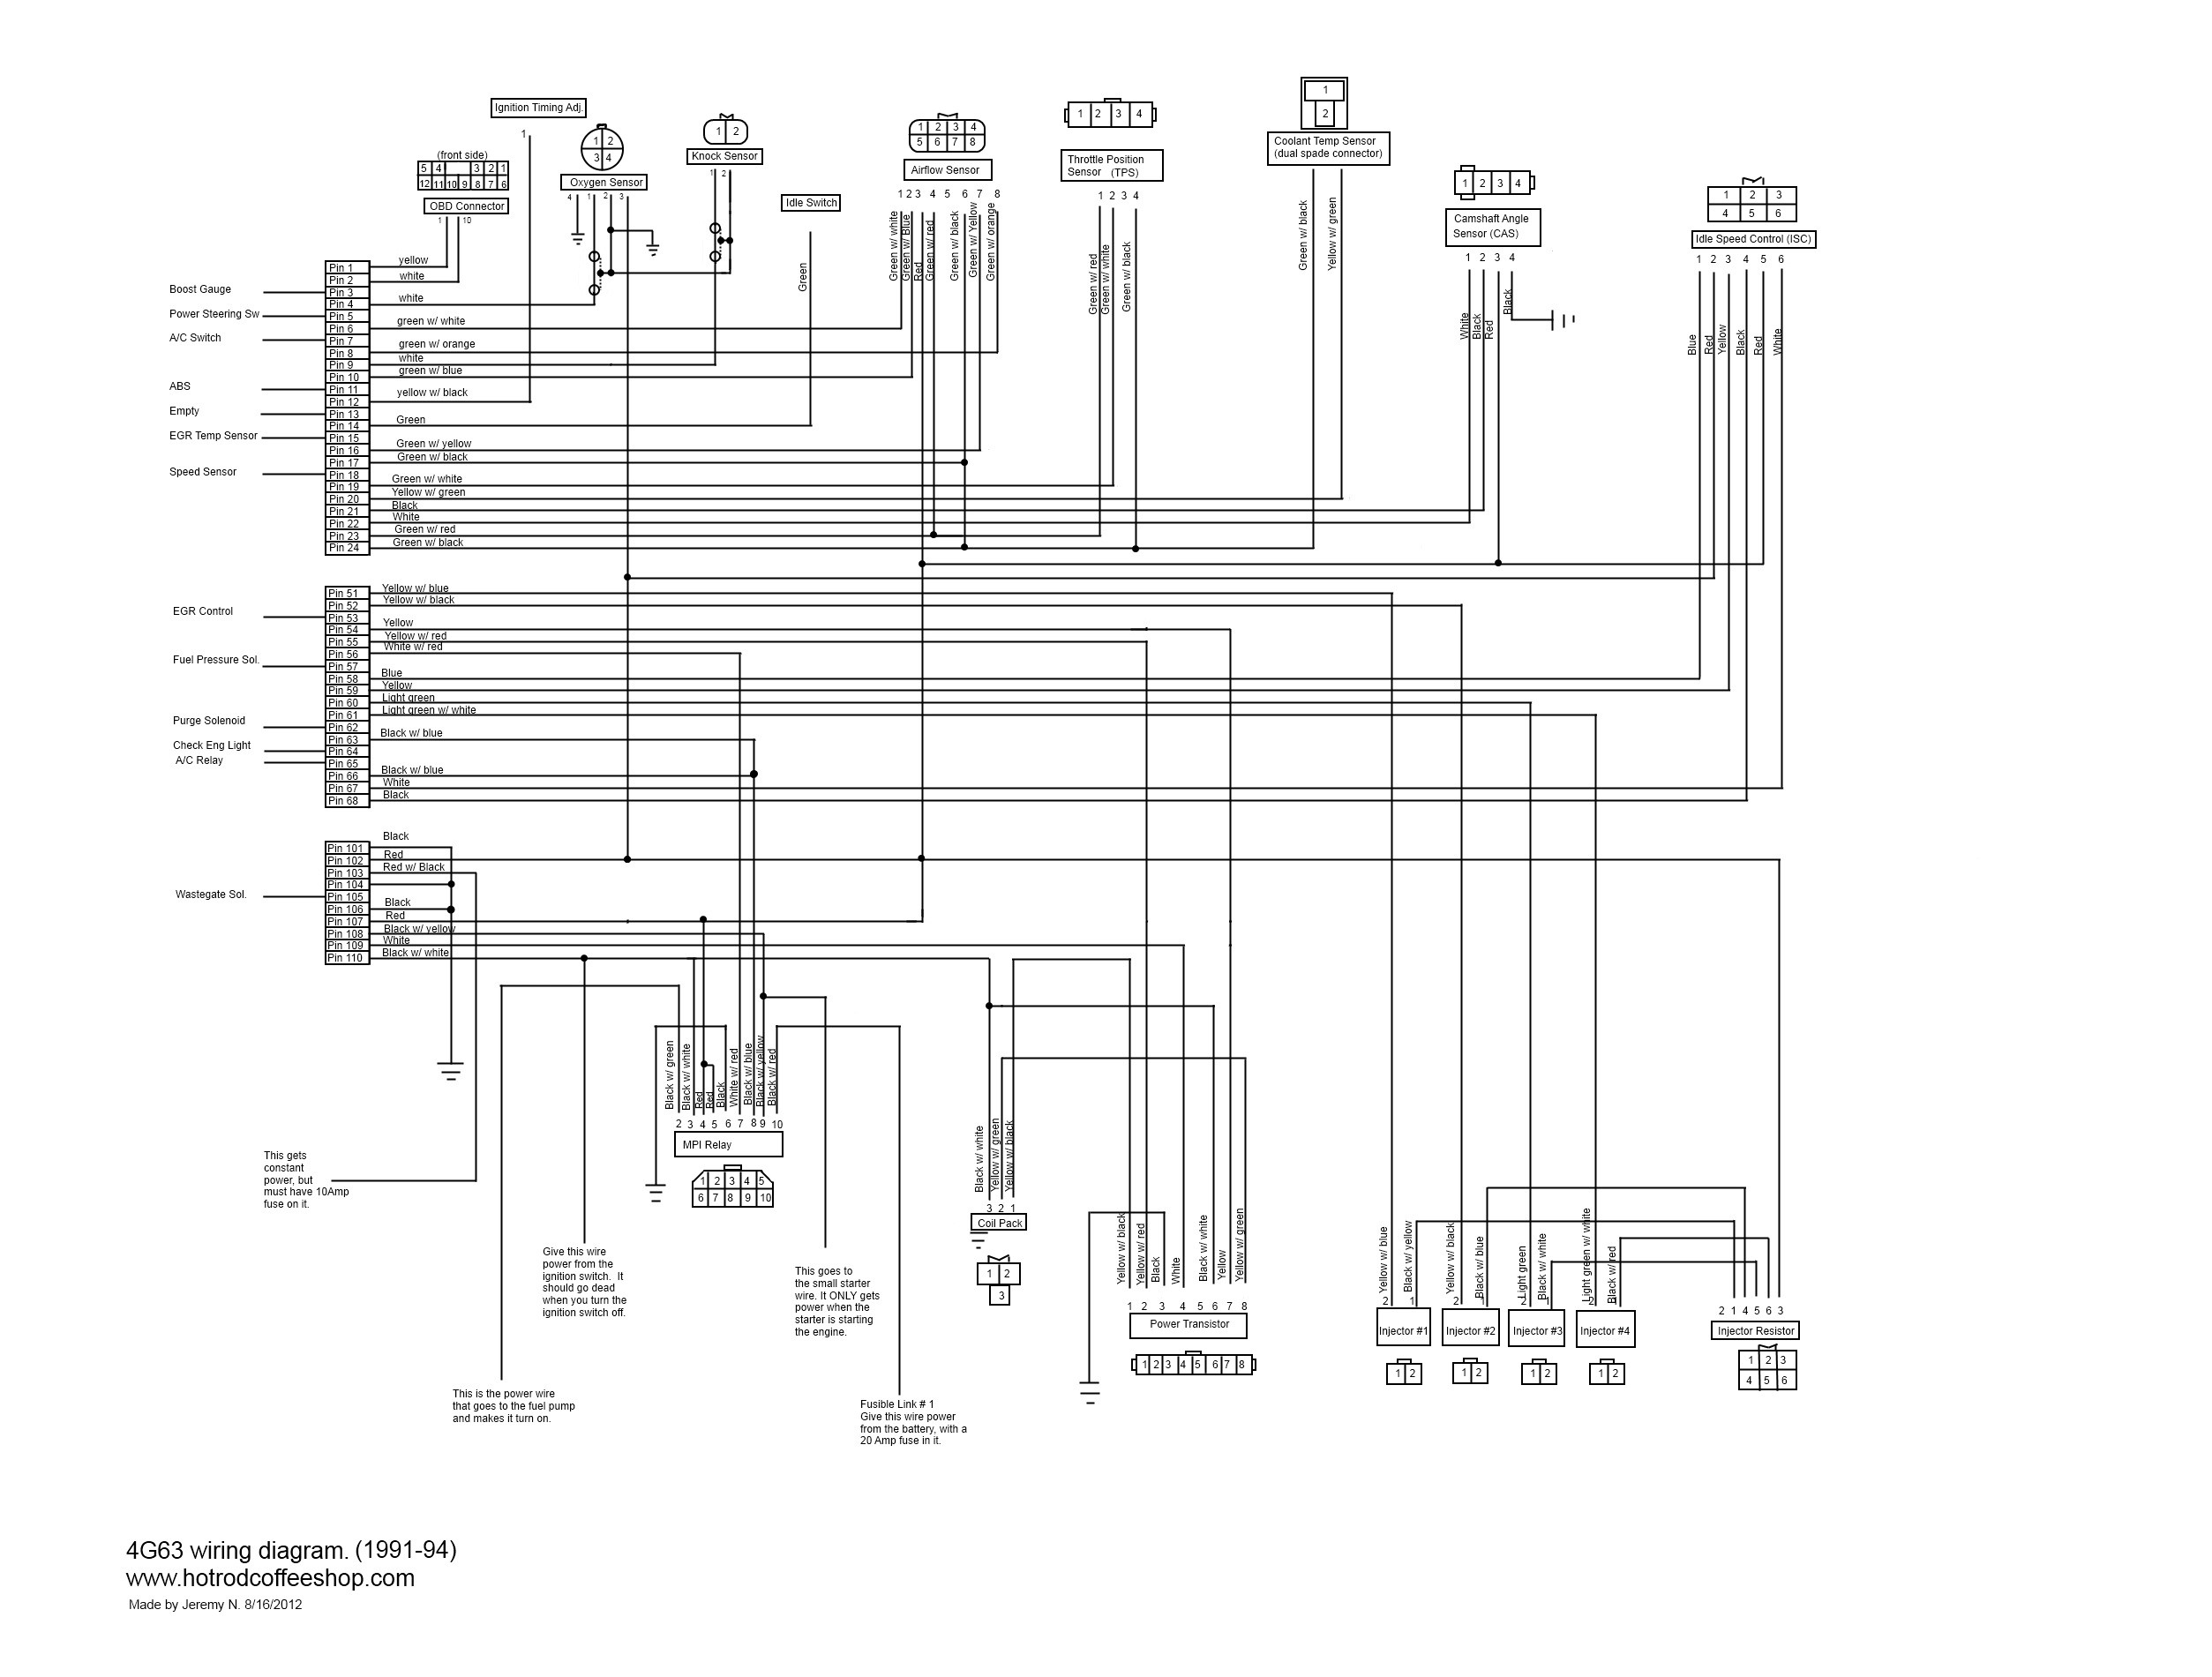 Mitsubishi Galant Engine Diagram 4g63 Wiring Diagrams Schematics for Engine Swaps Unbelievable Of Mitsubishi Galant Engine Diagram